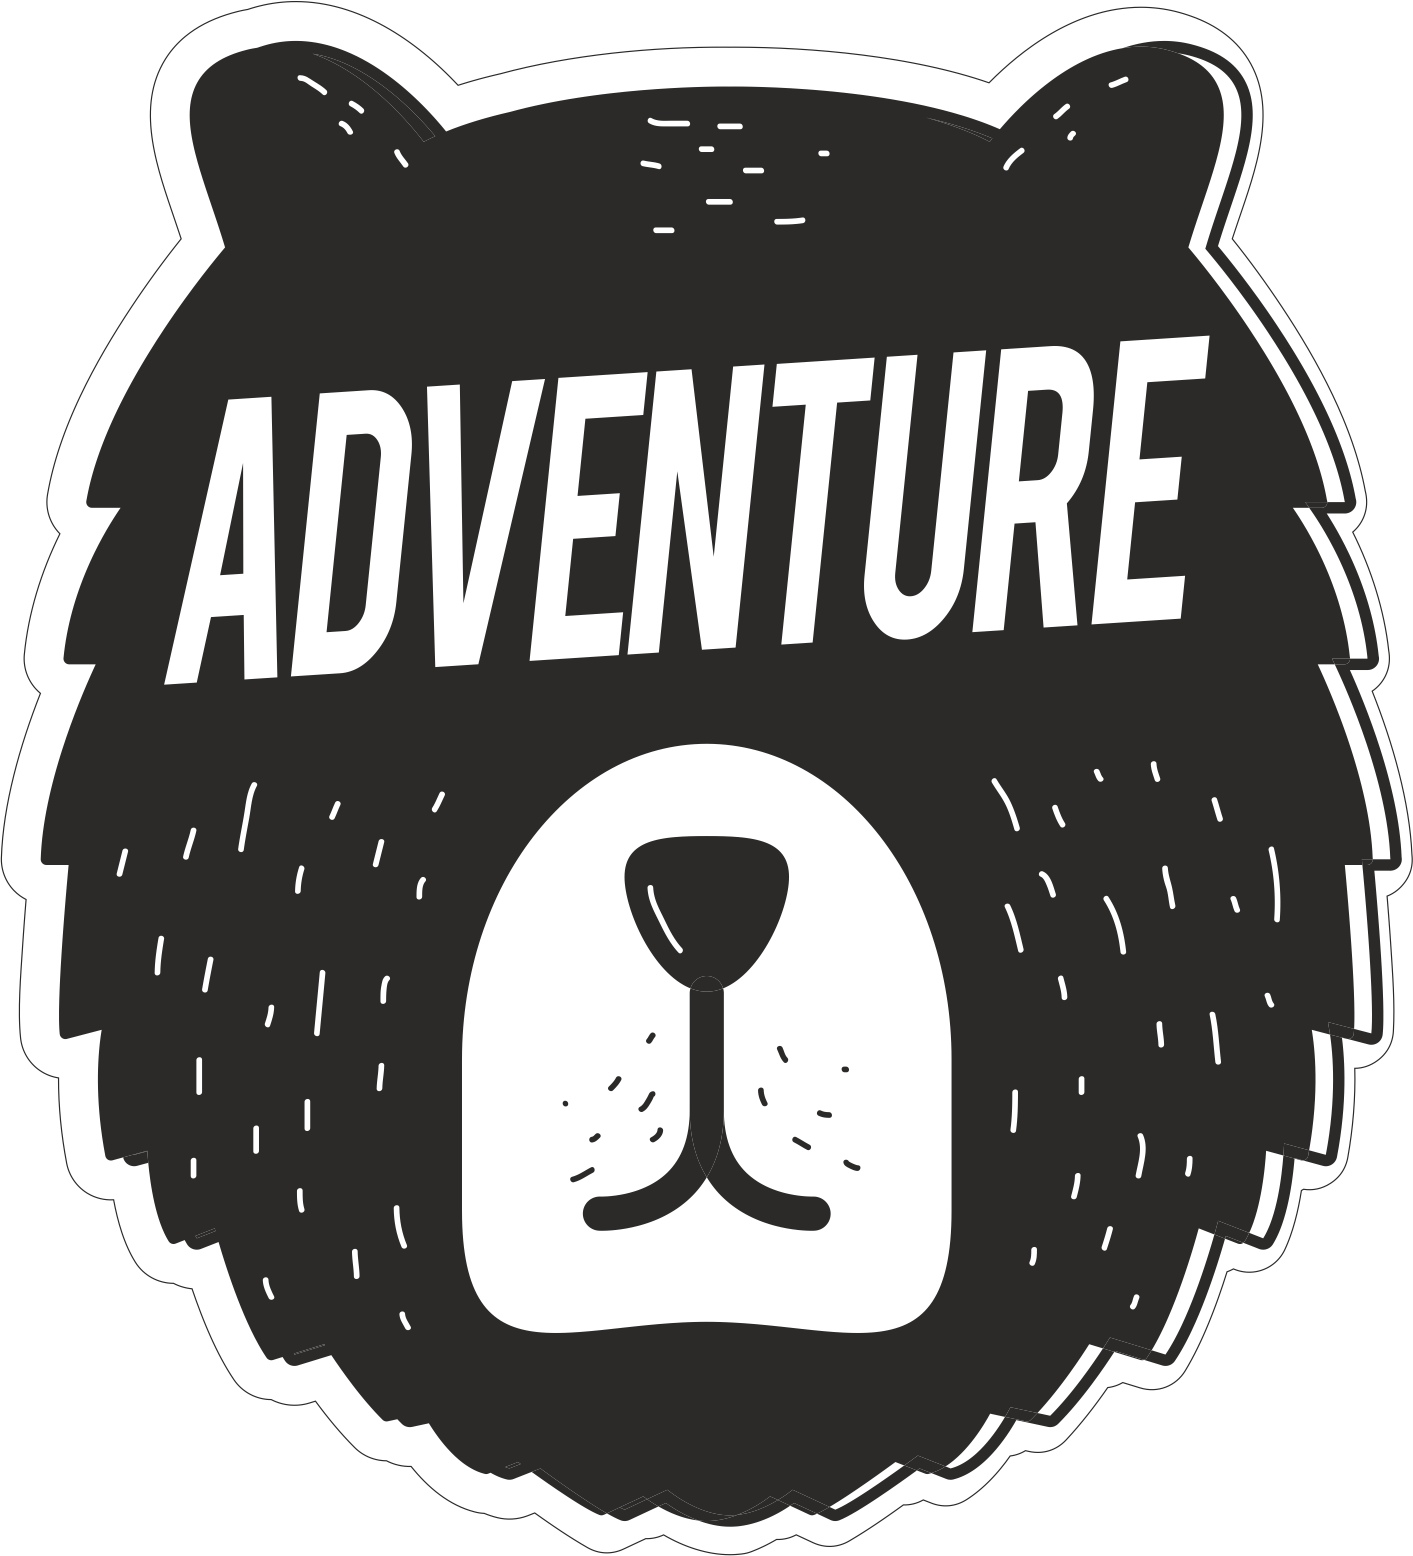 Adventure sticker free vector